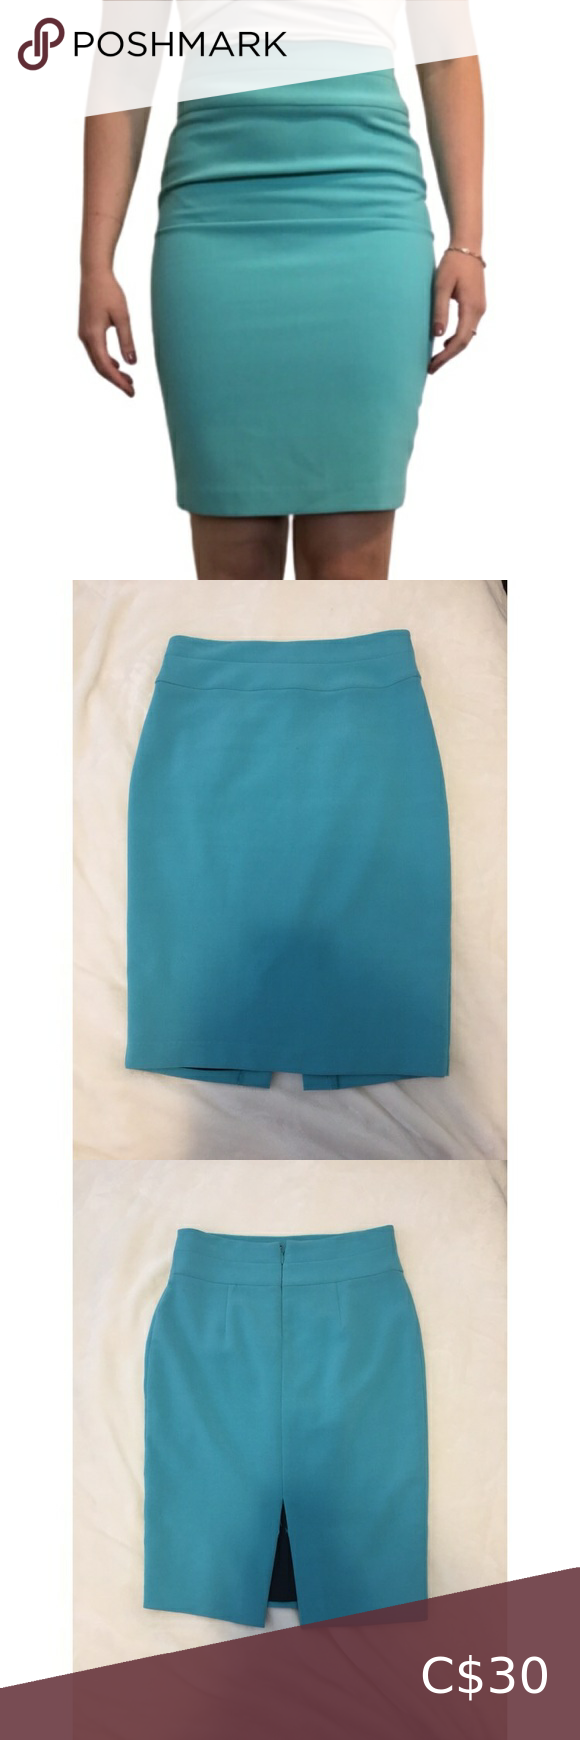 🌸4for$30 Le Chateau Pencil Skirt